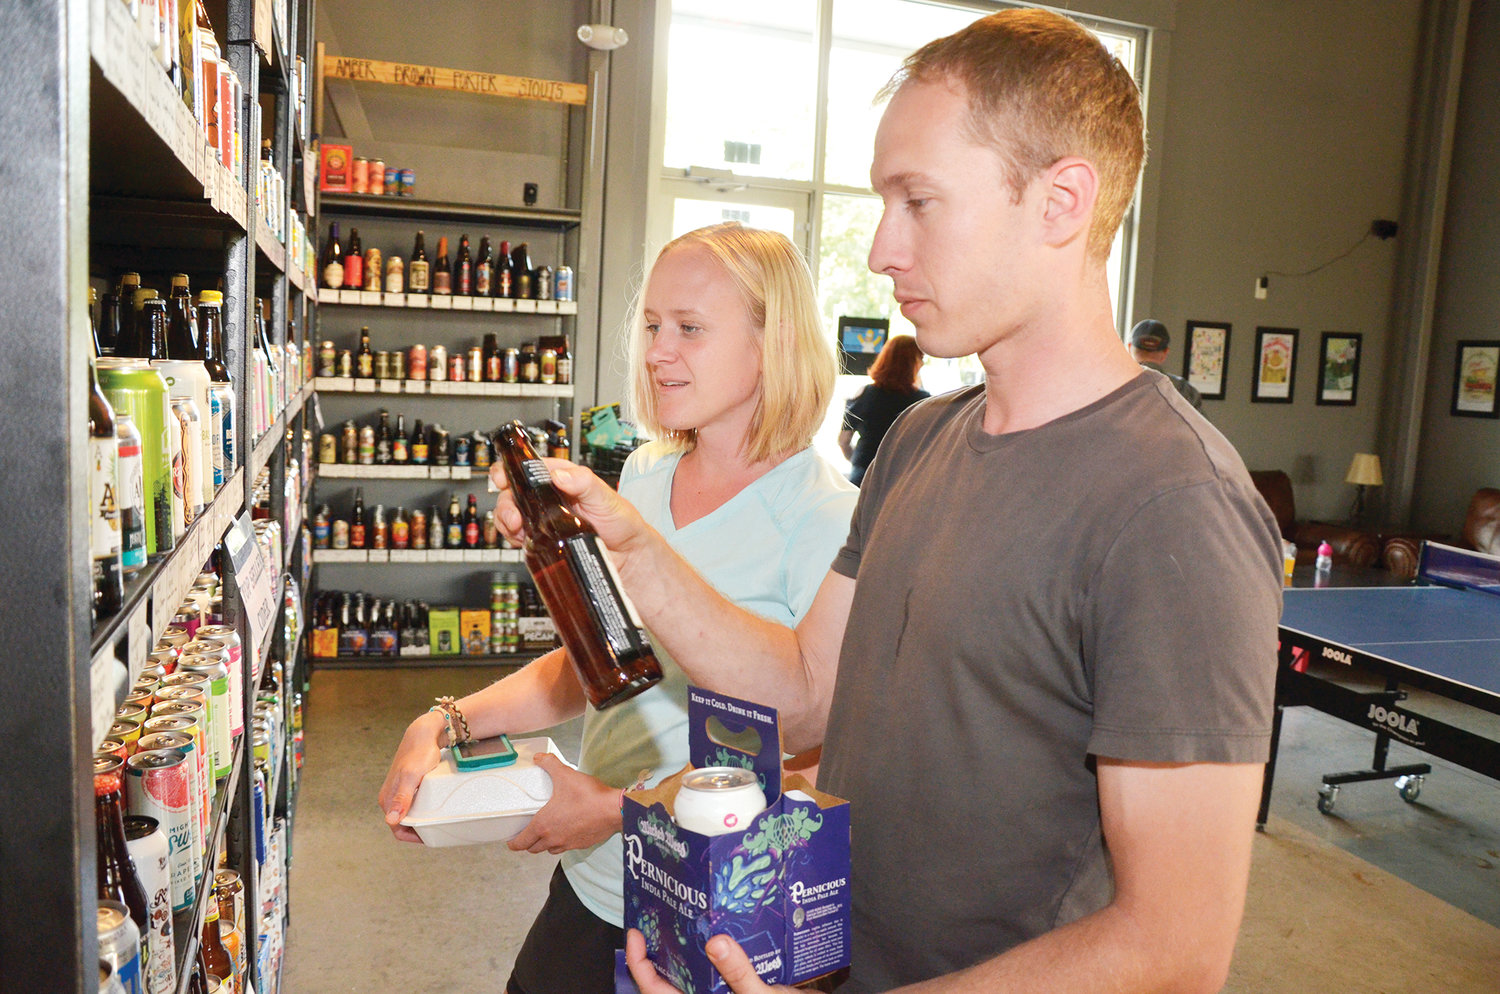 Sam Polak, left, assists Scott Heffley as they pick out a custom four-pack of beers from the selection on the wall. The two were picking up beers for a concert supply for the weekend.